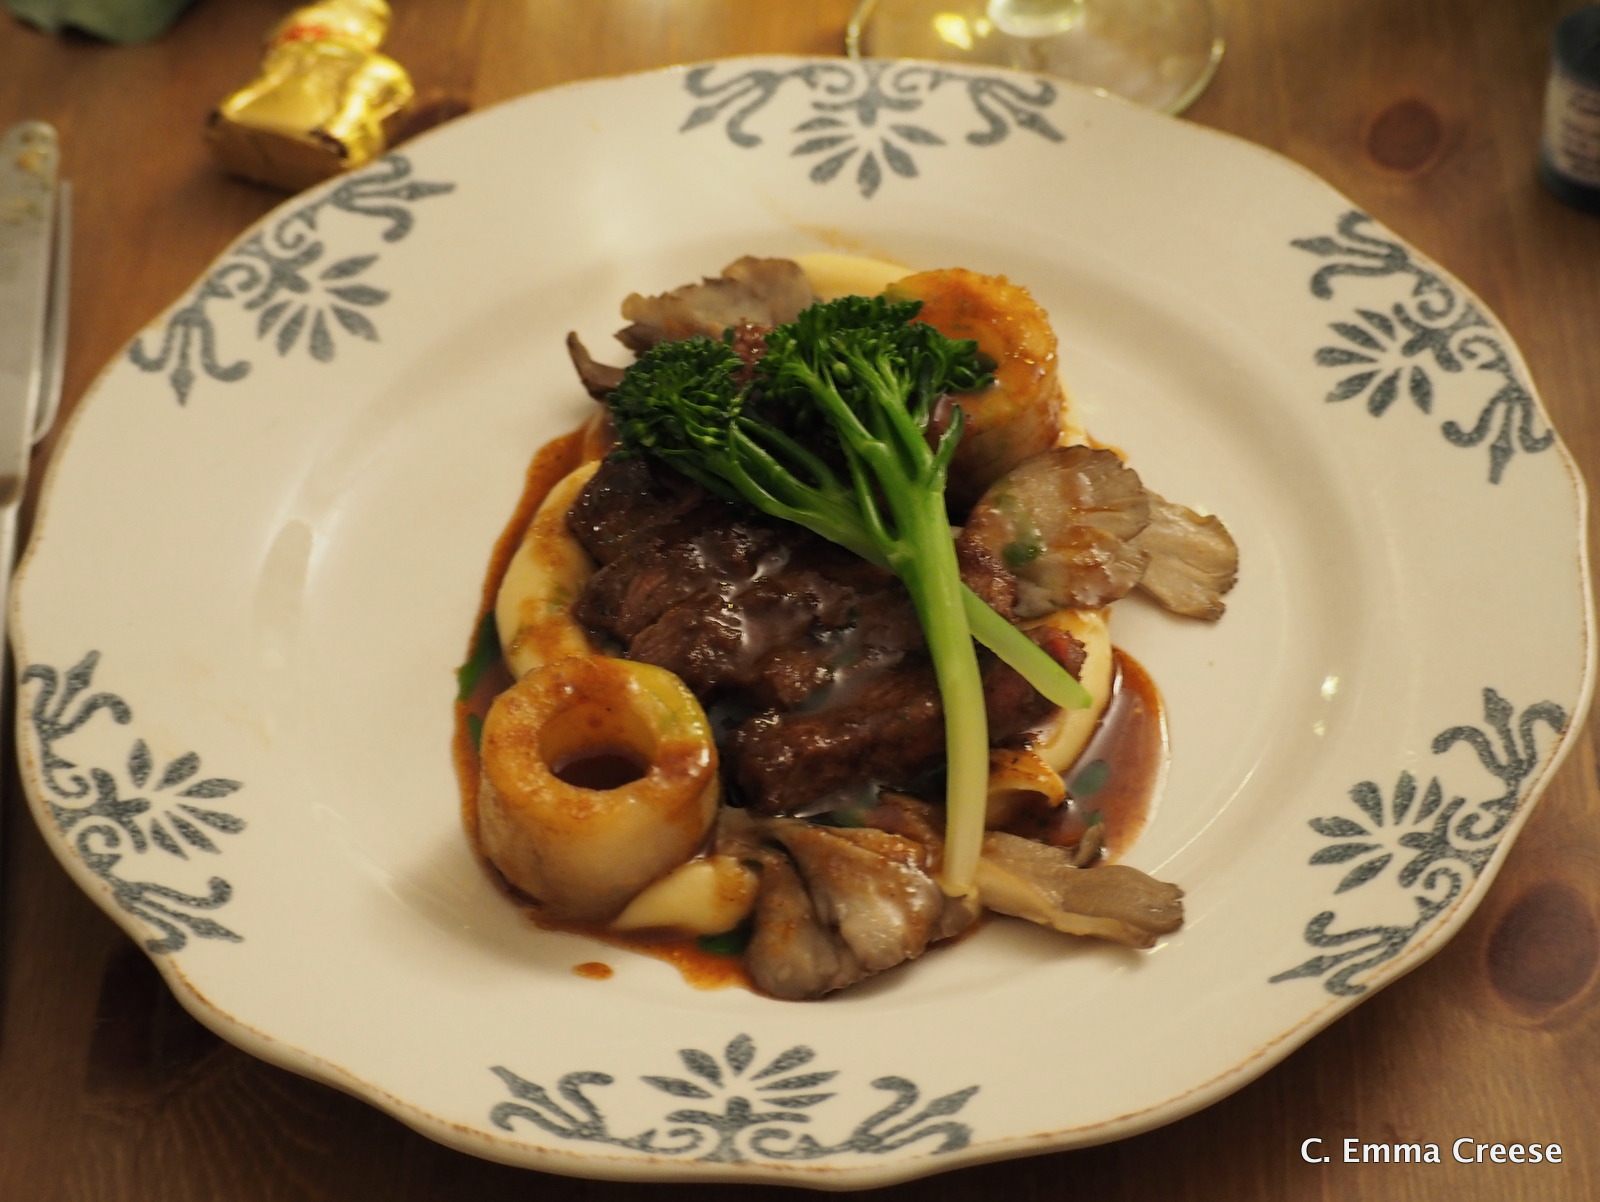 Dinner Party La Belle Assiette Fine Dining At Home Adventures of a London Kiwi